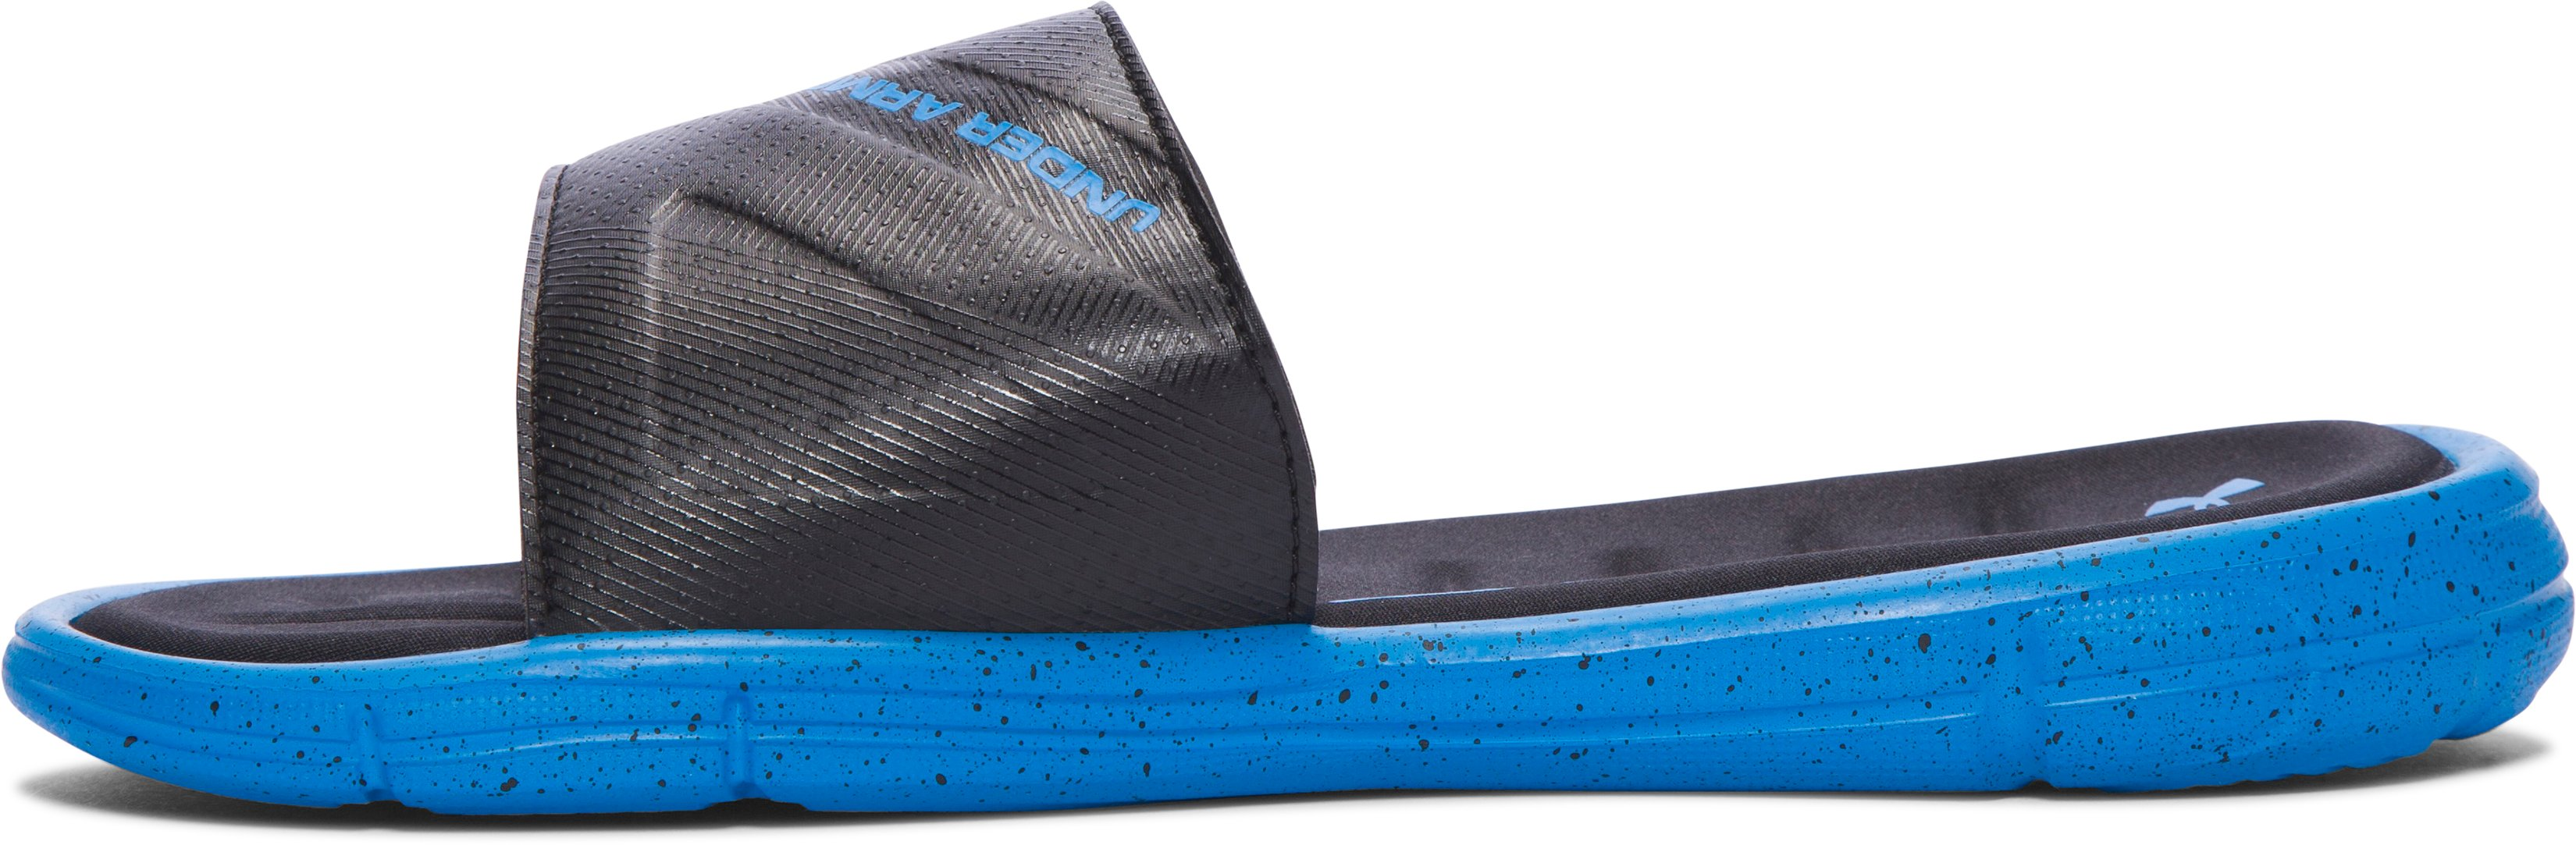 Boys' UA Ignite Water Friendly Slides, Black